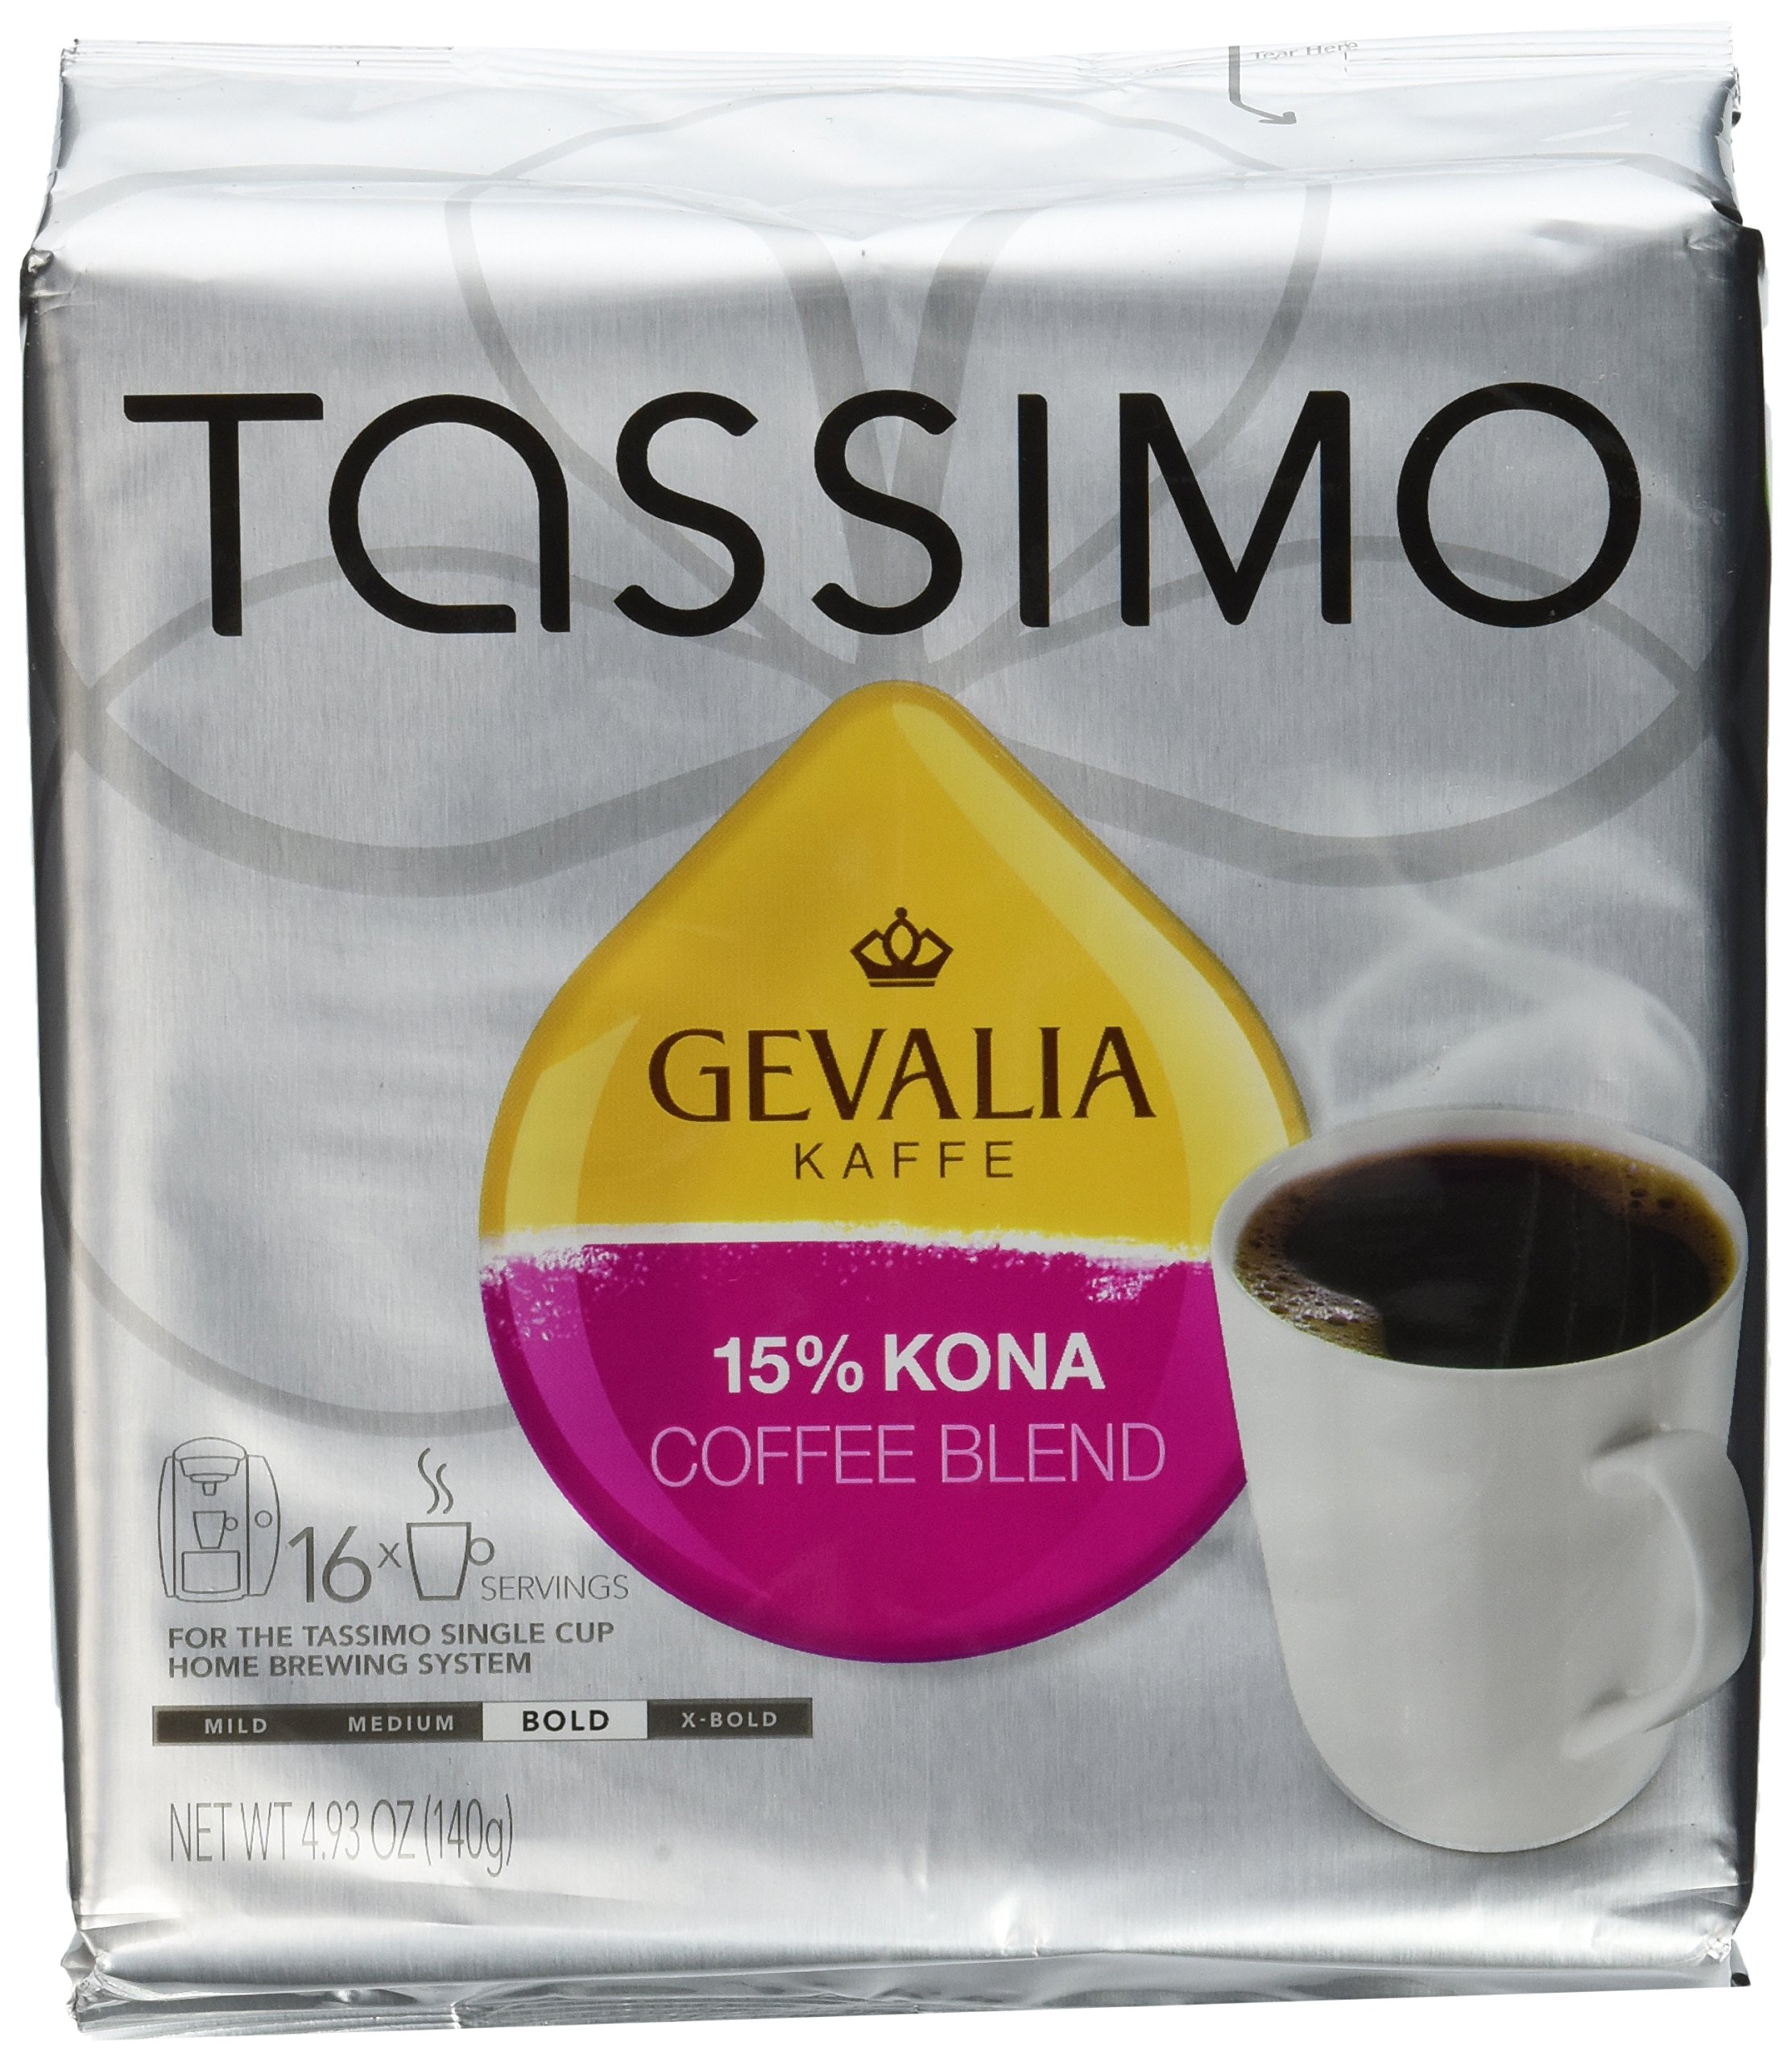 Gevalia Kaffe 15% Kona Blend Coffee (Pack of 2)